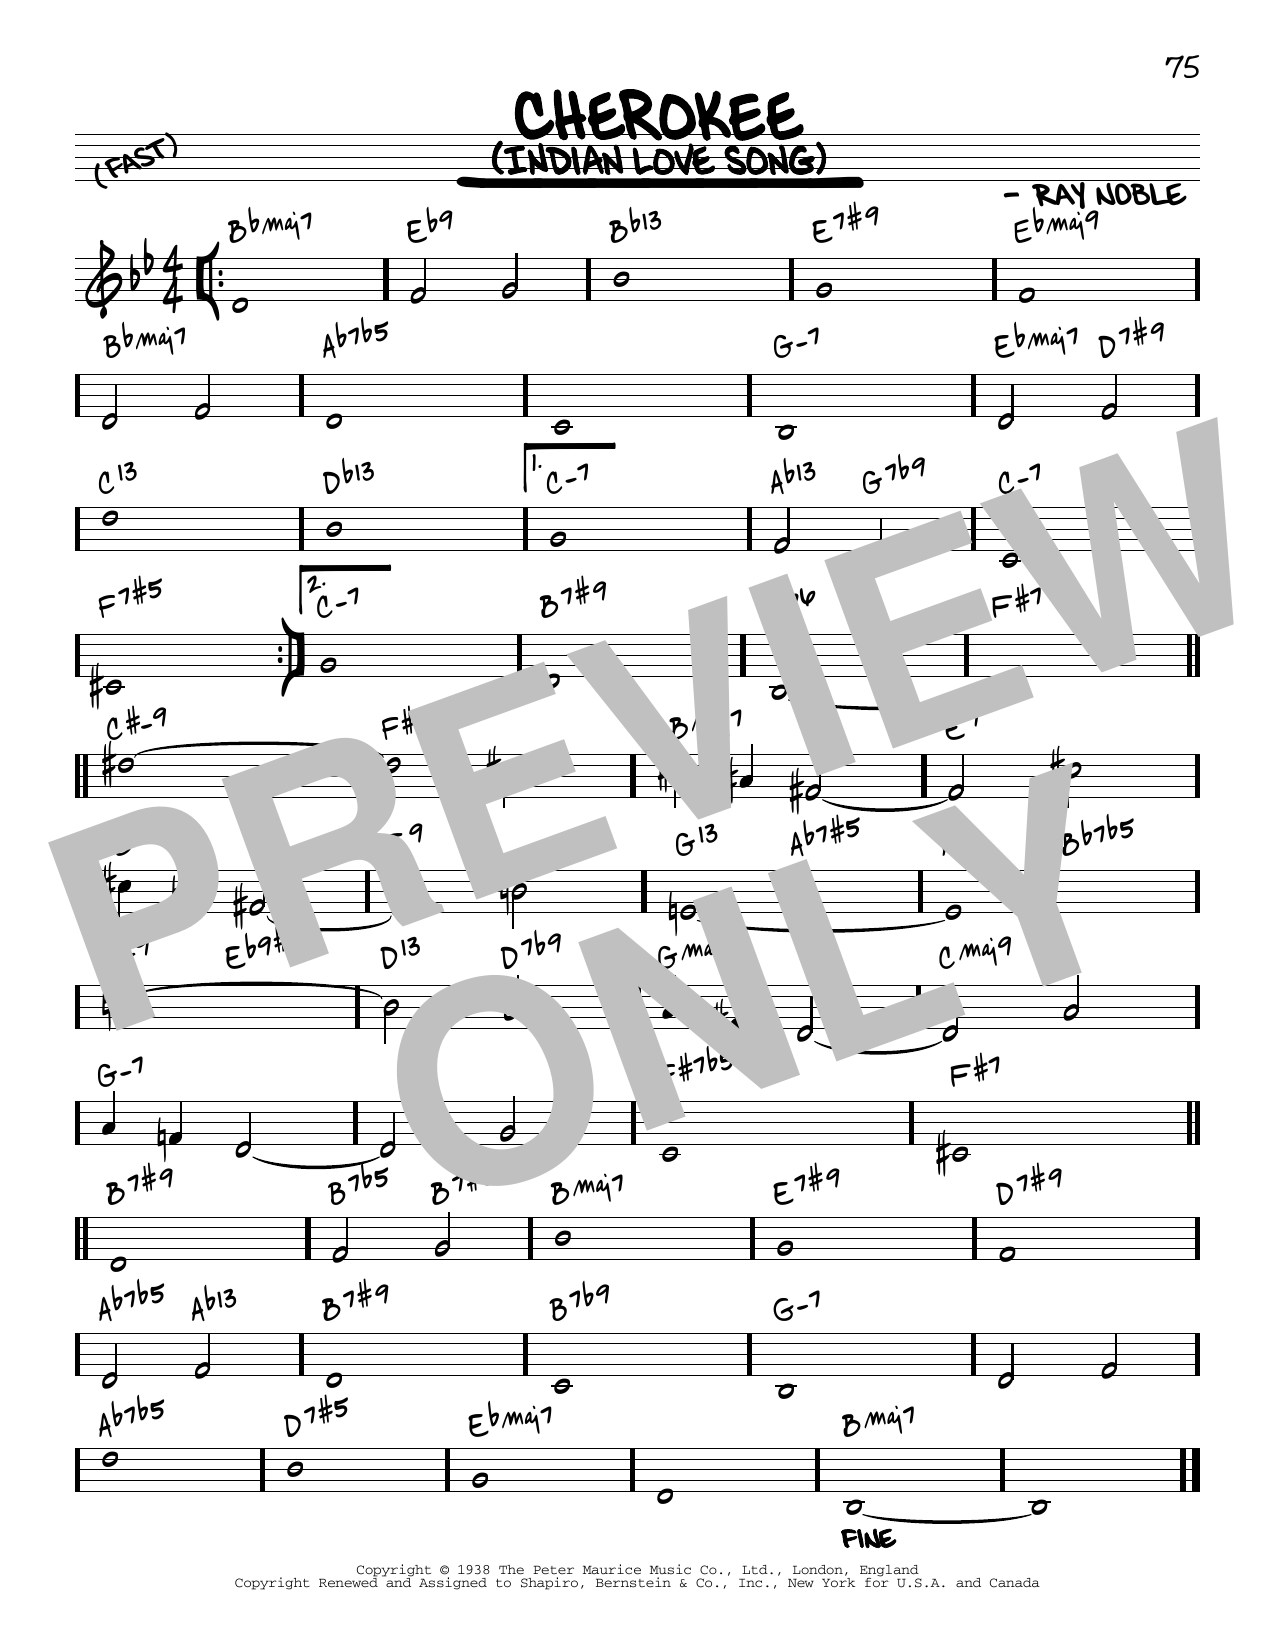 Ray Noble And His Orchestra Cherokee (Indian Love Song) [Reharmonized version] (arr. Jack Grassel) sheet music notes printable PDF score